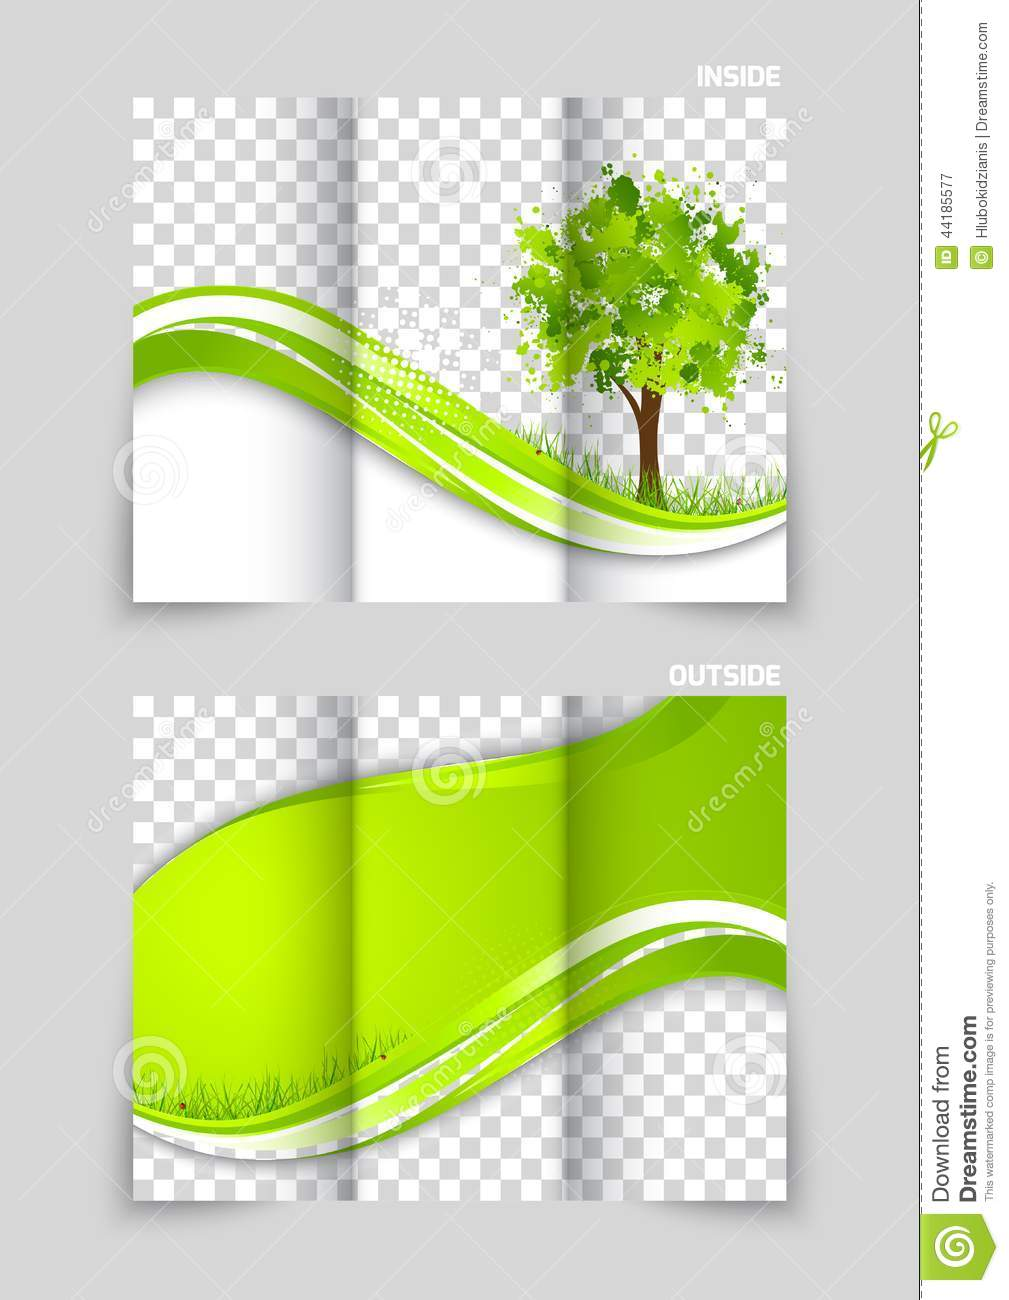 Blank Tri Fold Brochure Template Free Download. Tri Fold Brochure Design  Template .  Microsoft Tri Fold Brochure Template Free